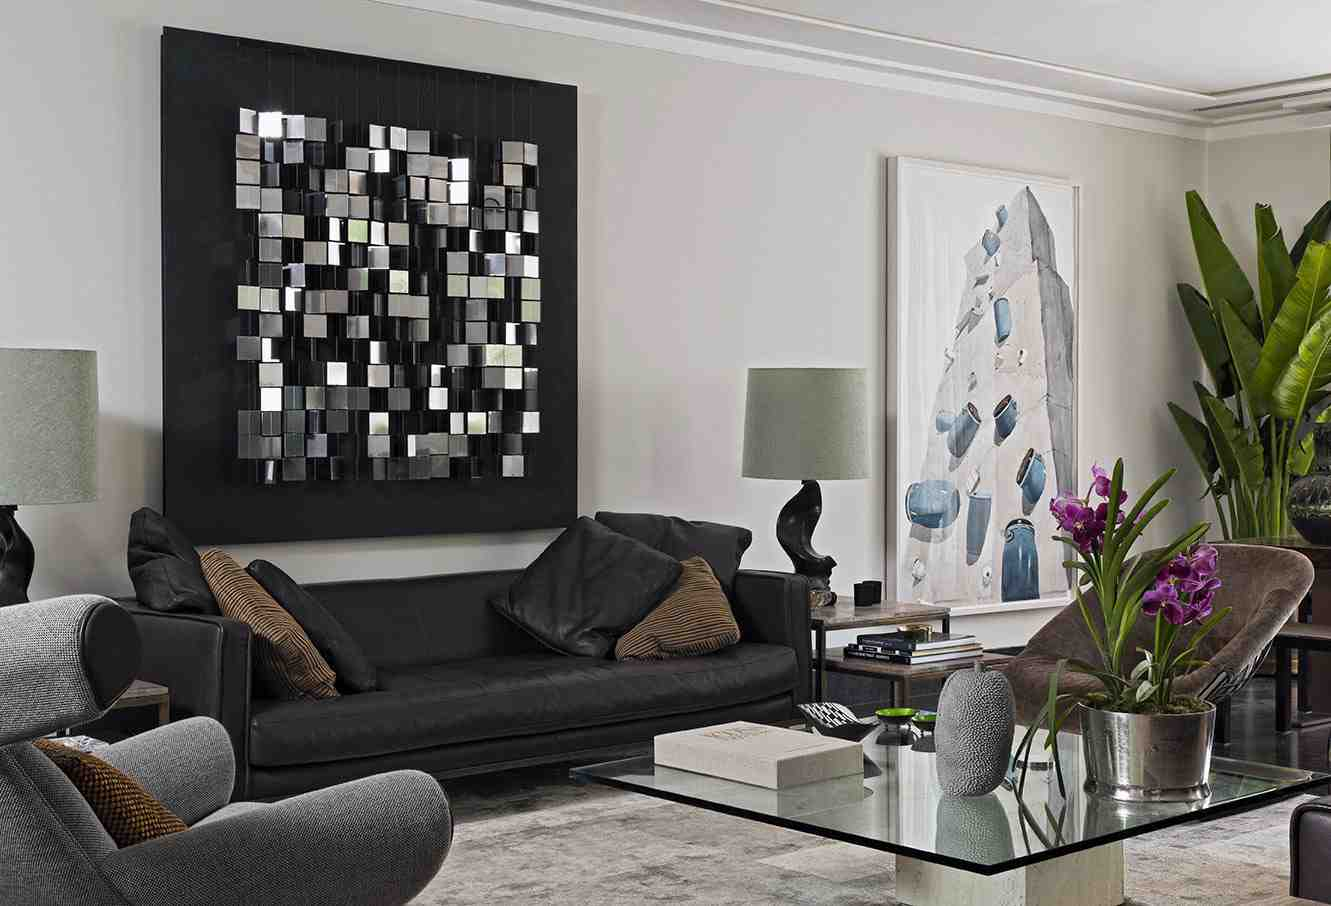 Wall Decoration For Living Room : Living room wall decor options ideasdecor ideas